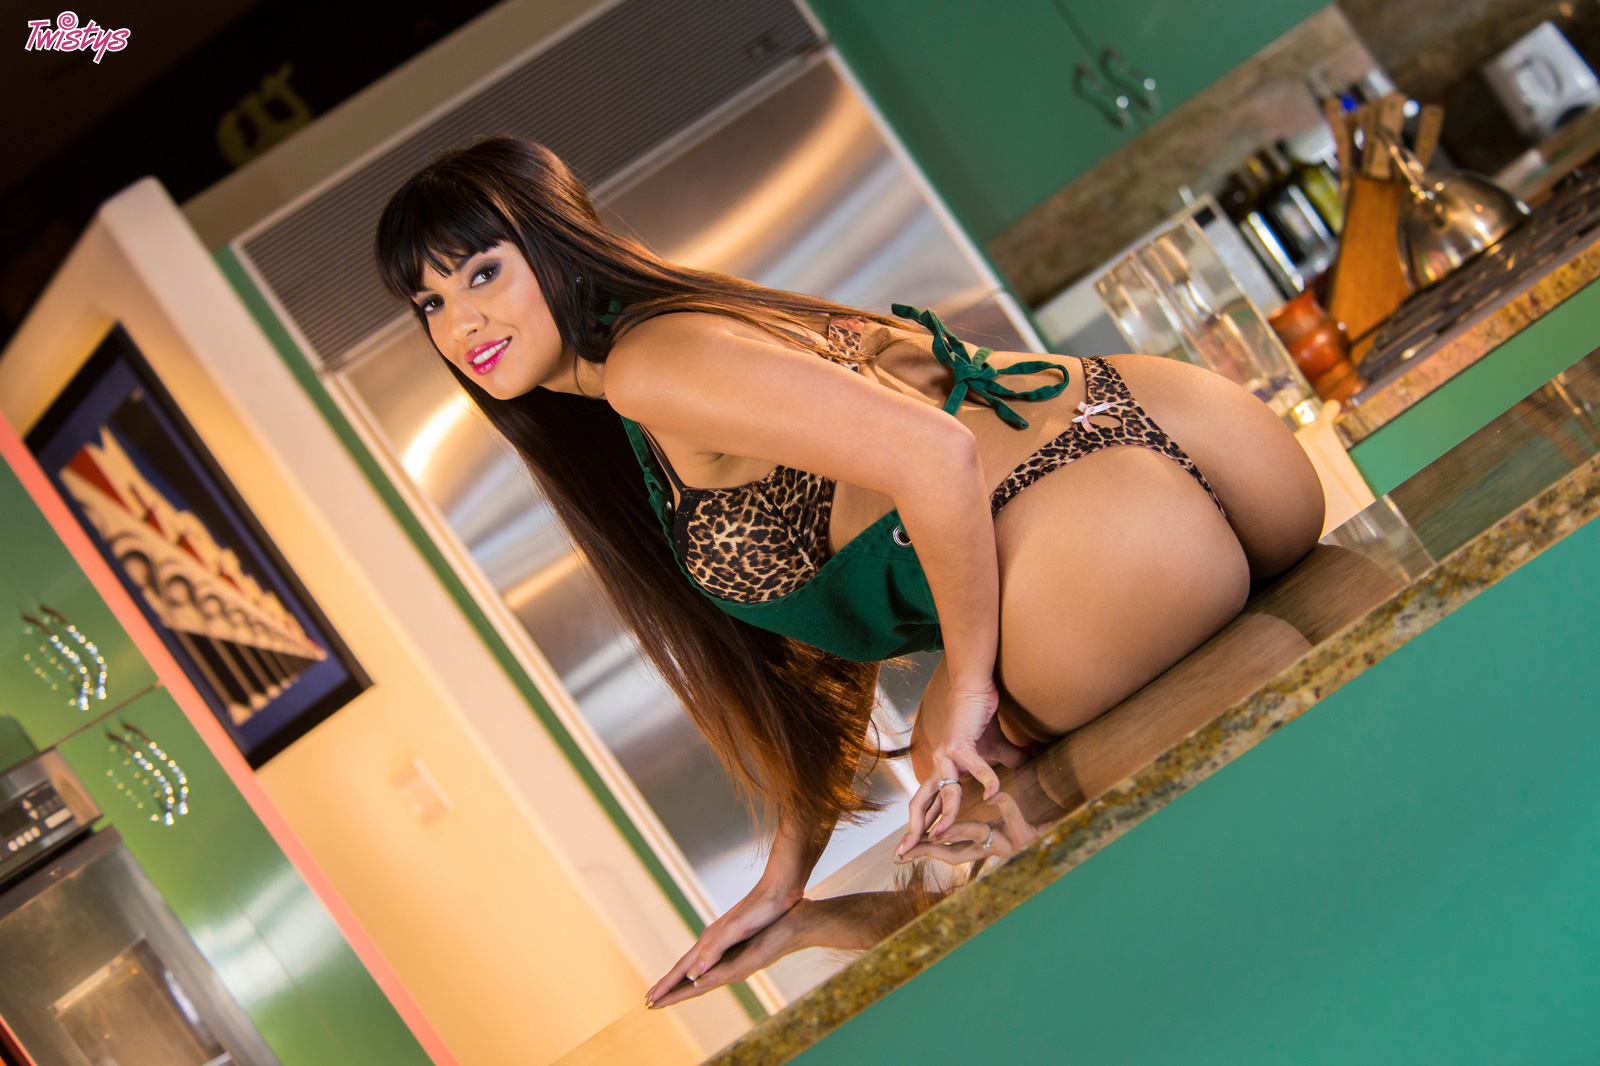 Somethin's Cookin'.. featuring Mercedes Carrera | Twistys.com